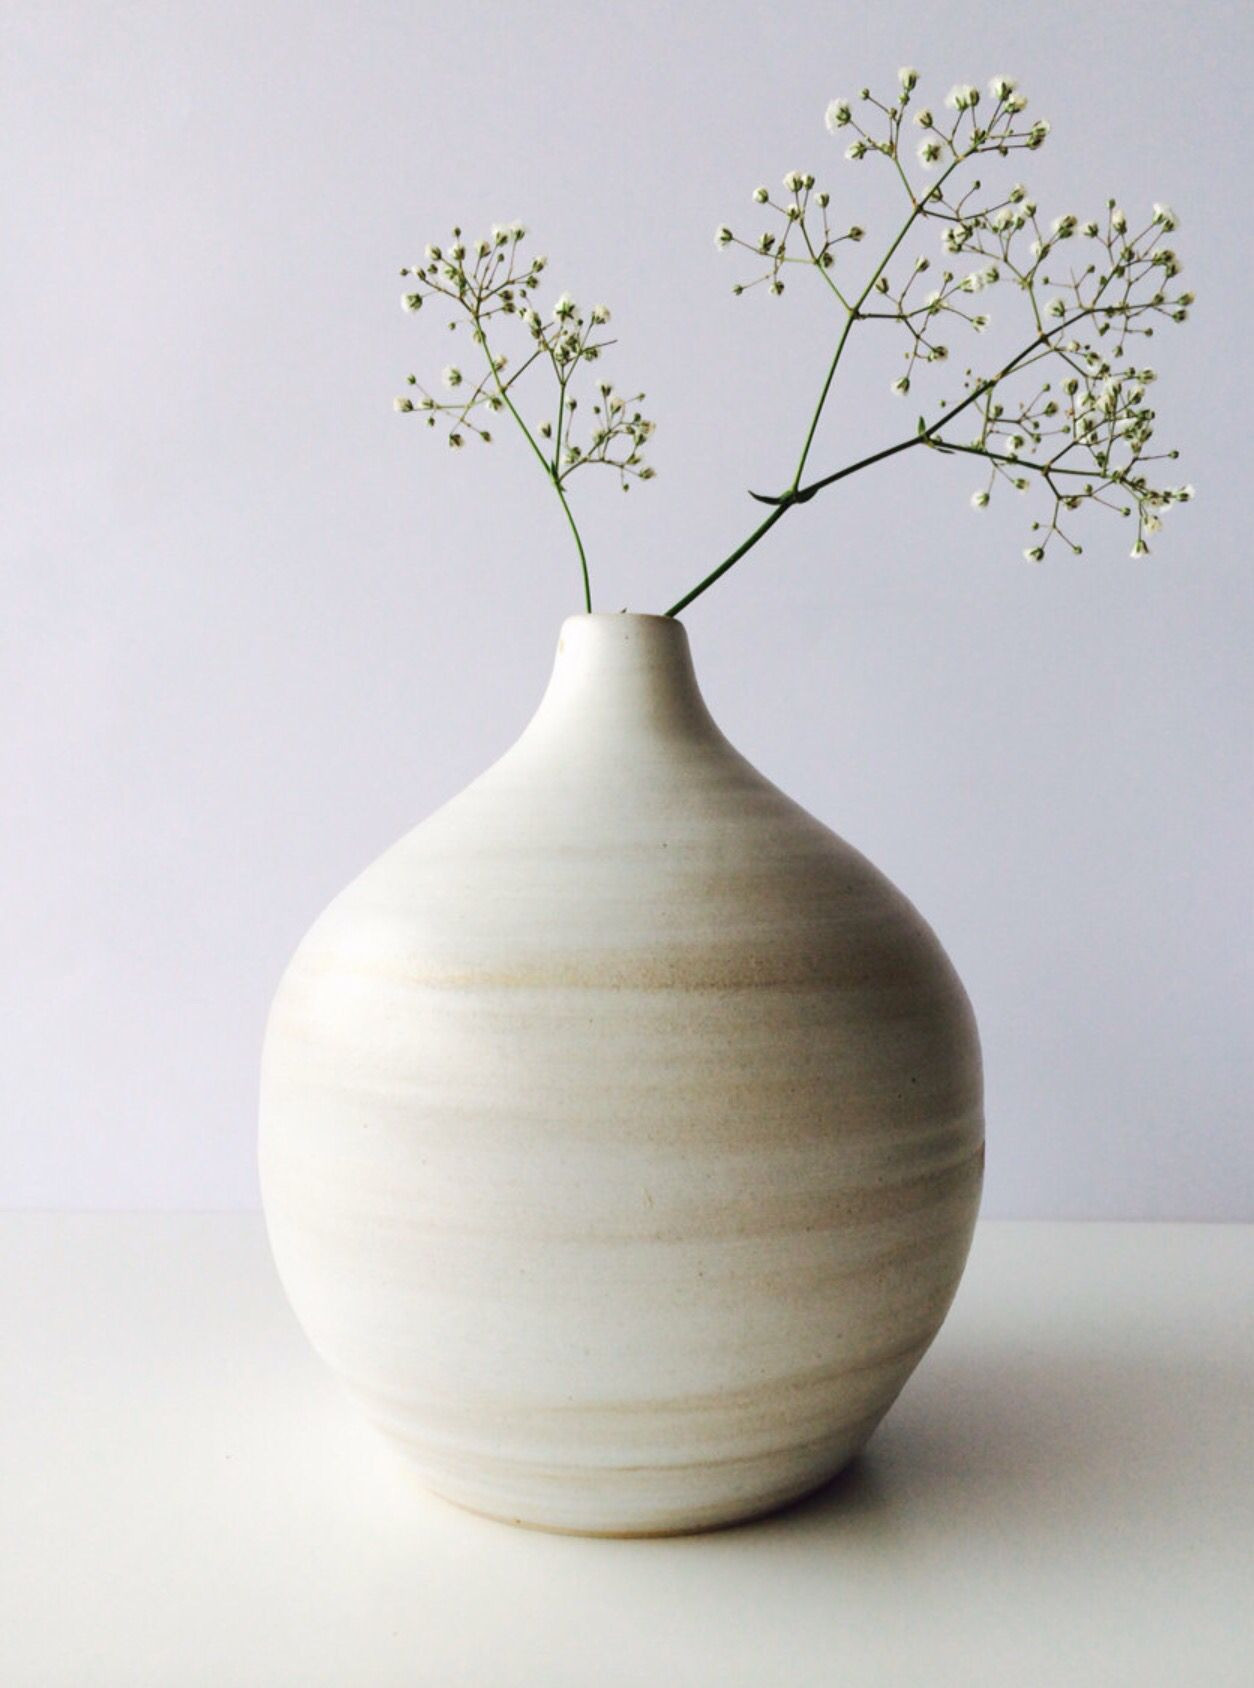 White Bud Vase Of Small White Stoneware Bud Vase Ceramics Pinterest Stoneware within Small White Stoneware Bud Vase